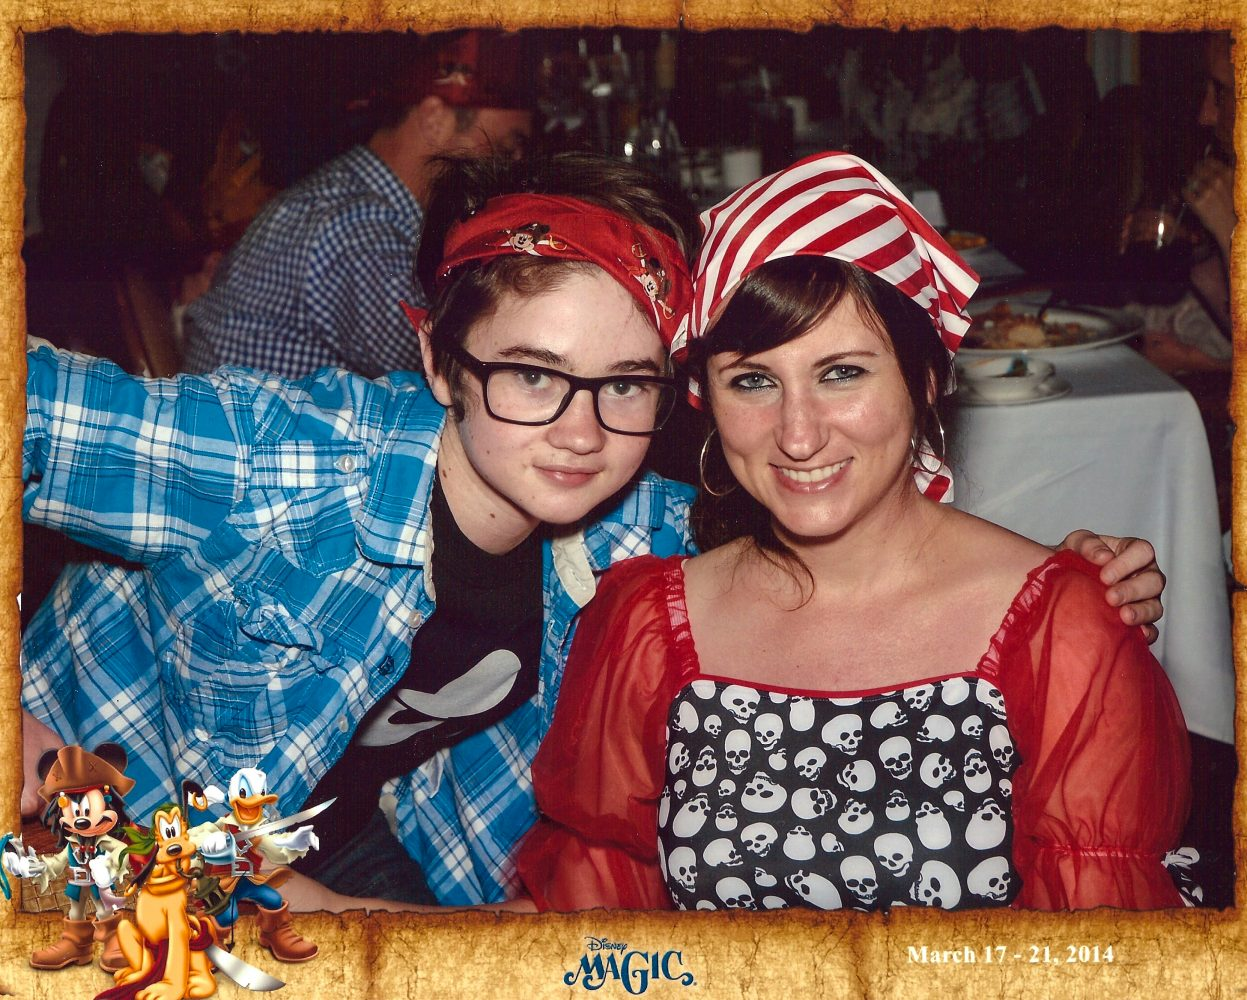 Disney Magic Cruise Pirate Night